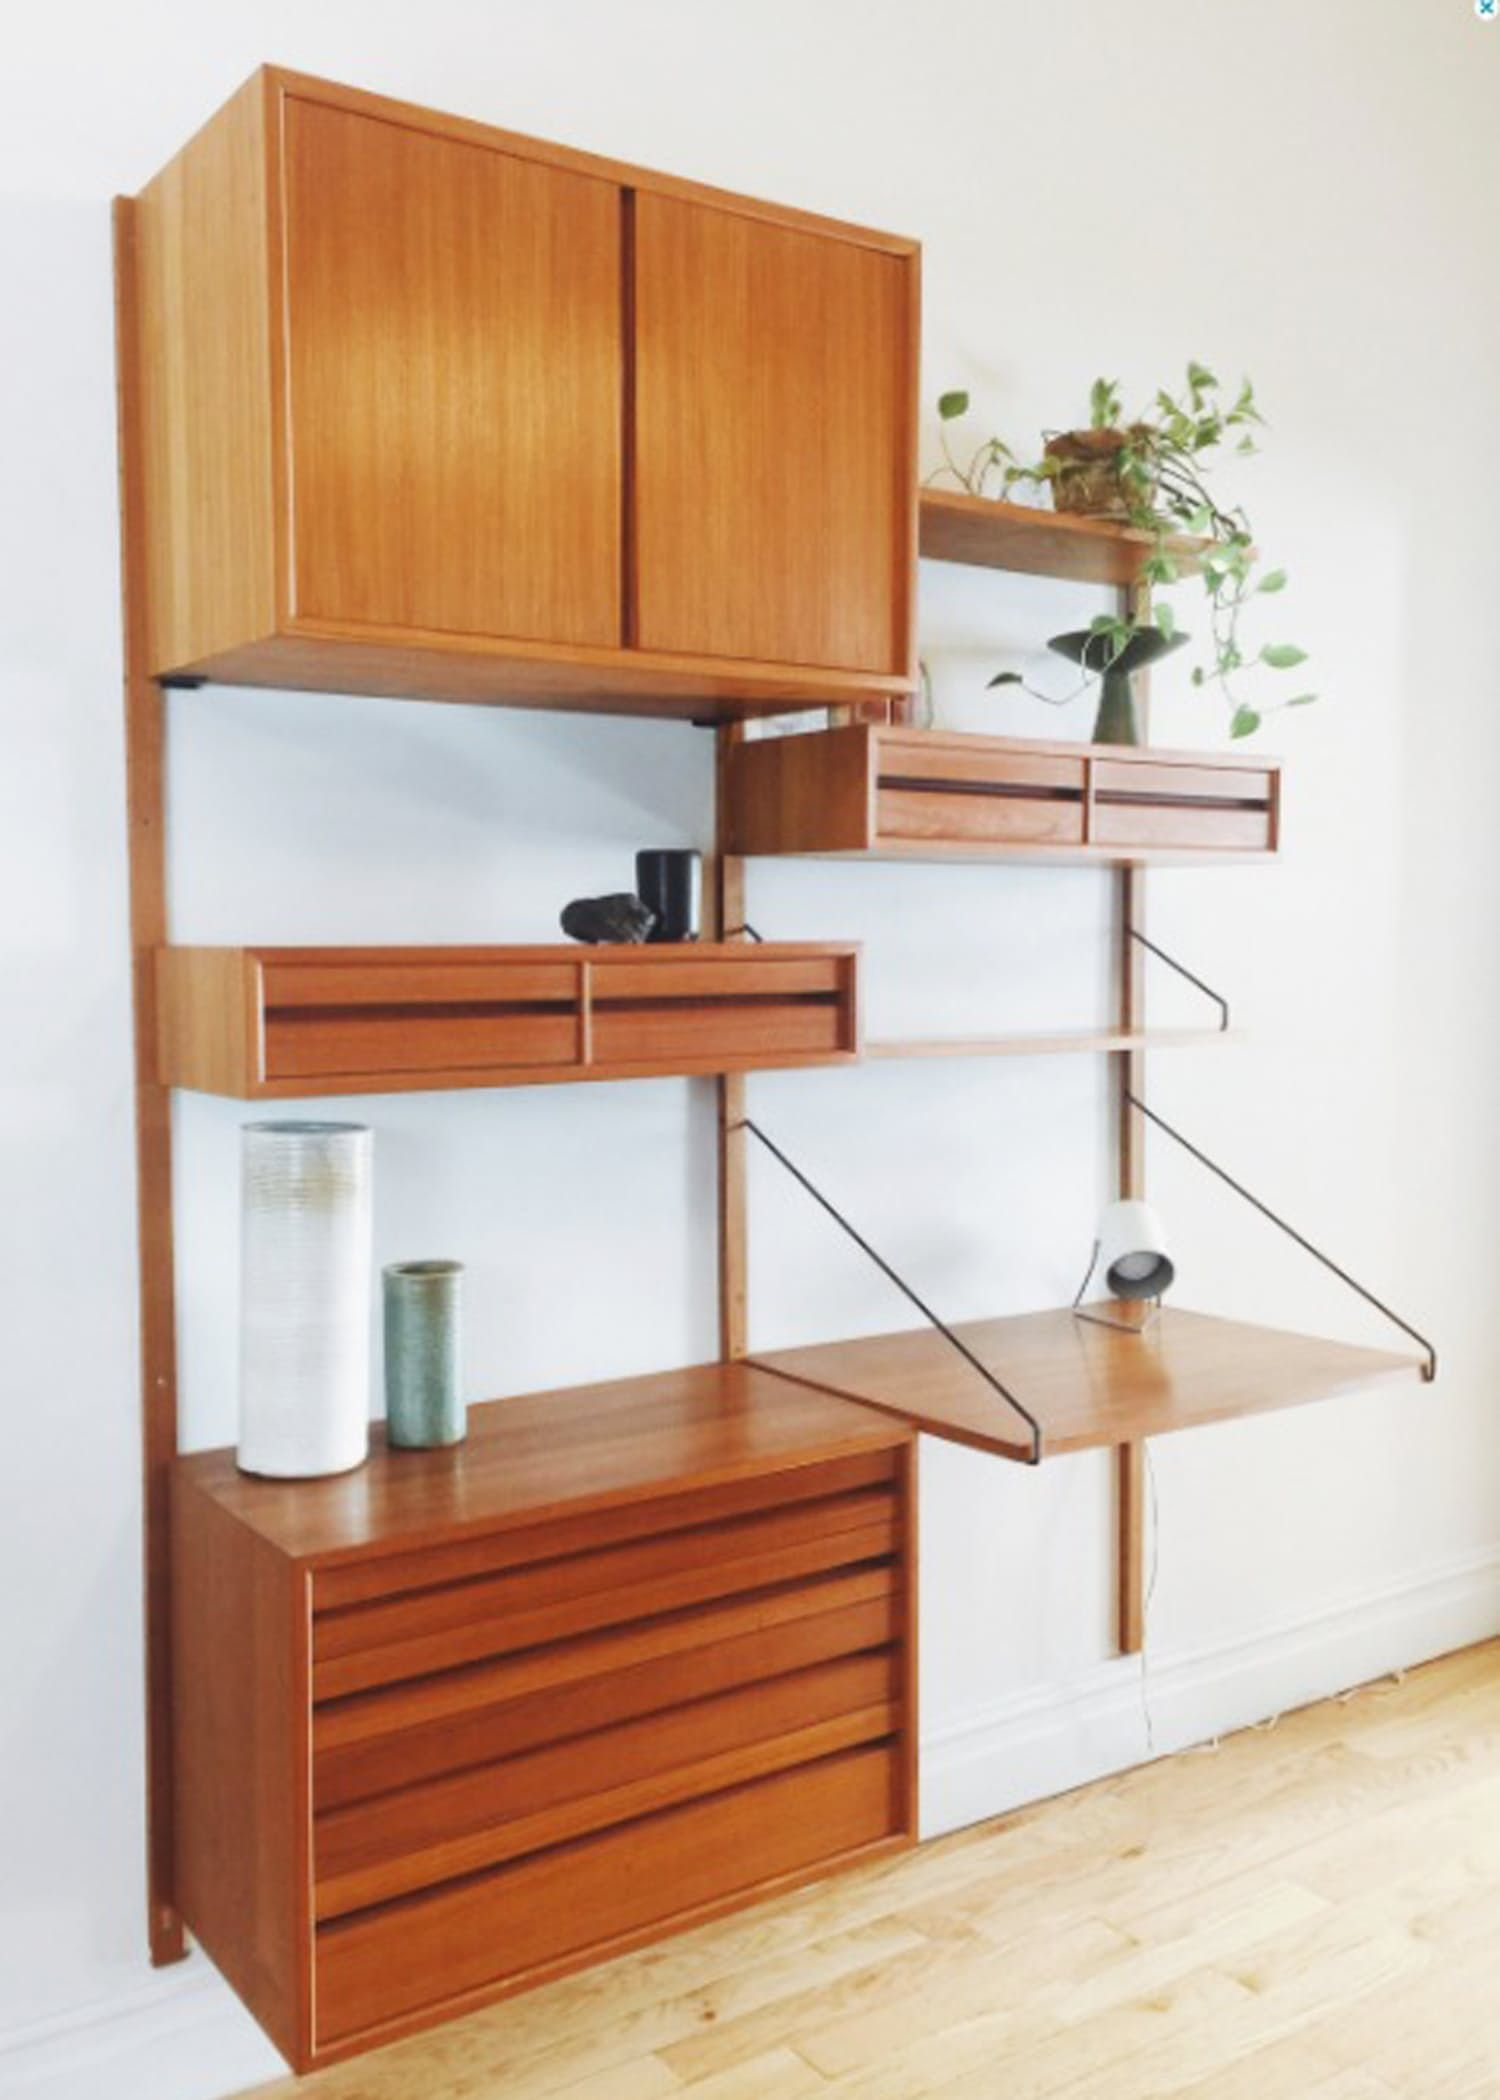 Vintage Mid Century Wall Units for Every Bud